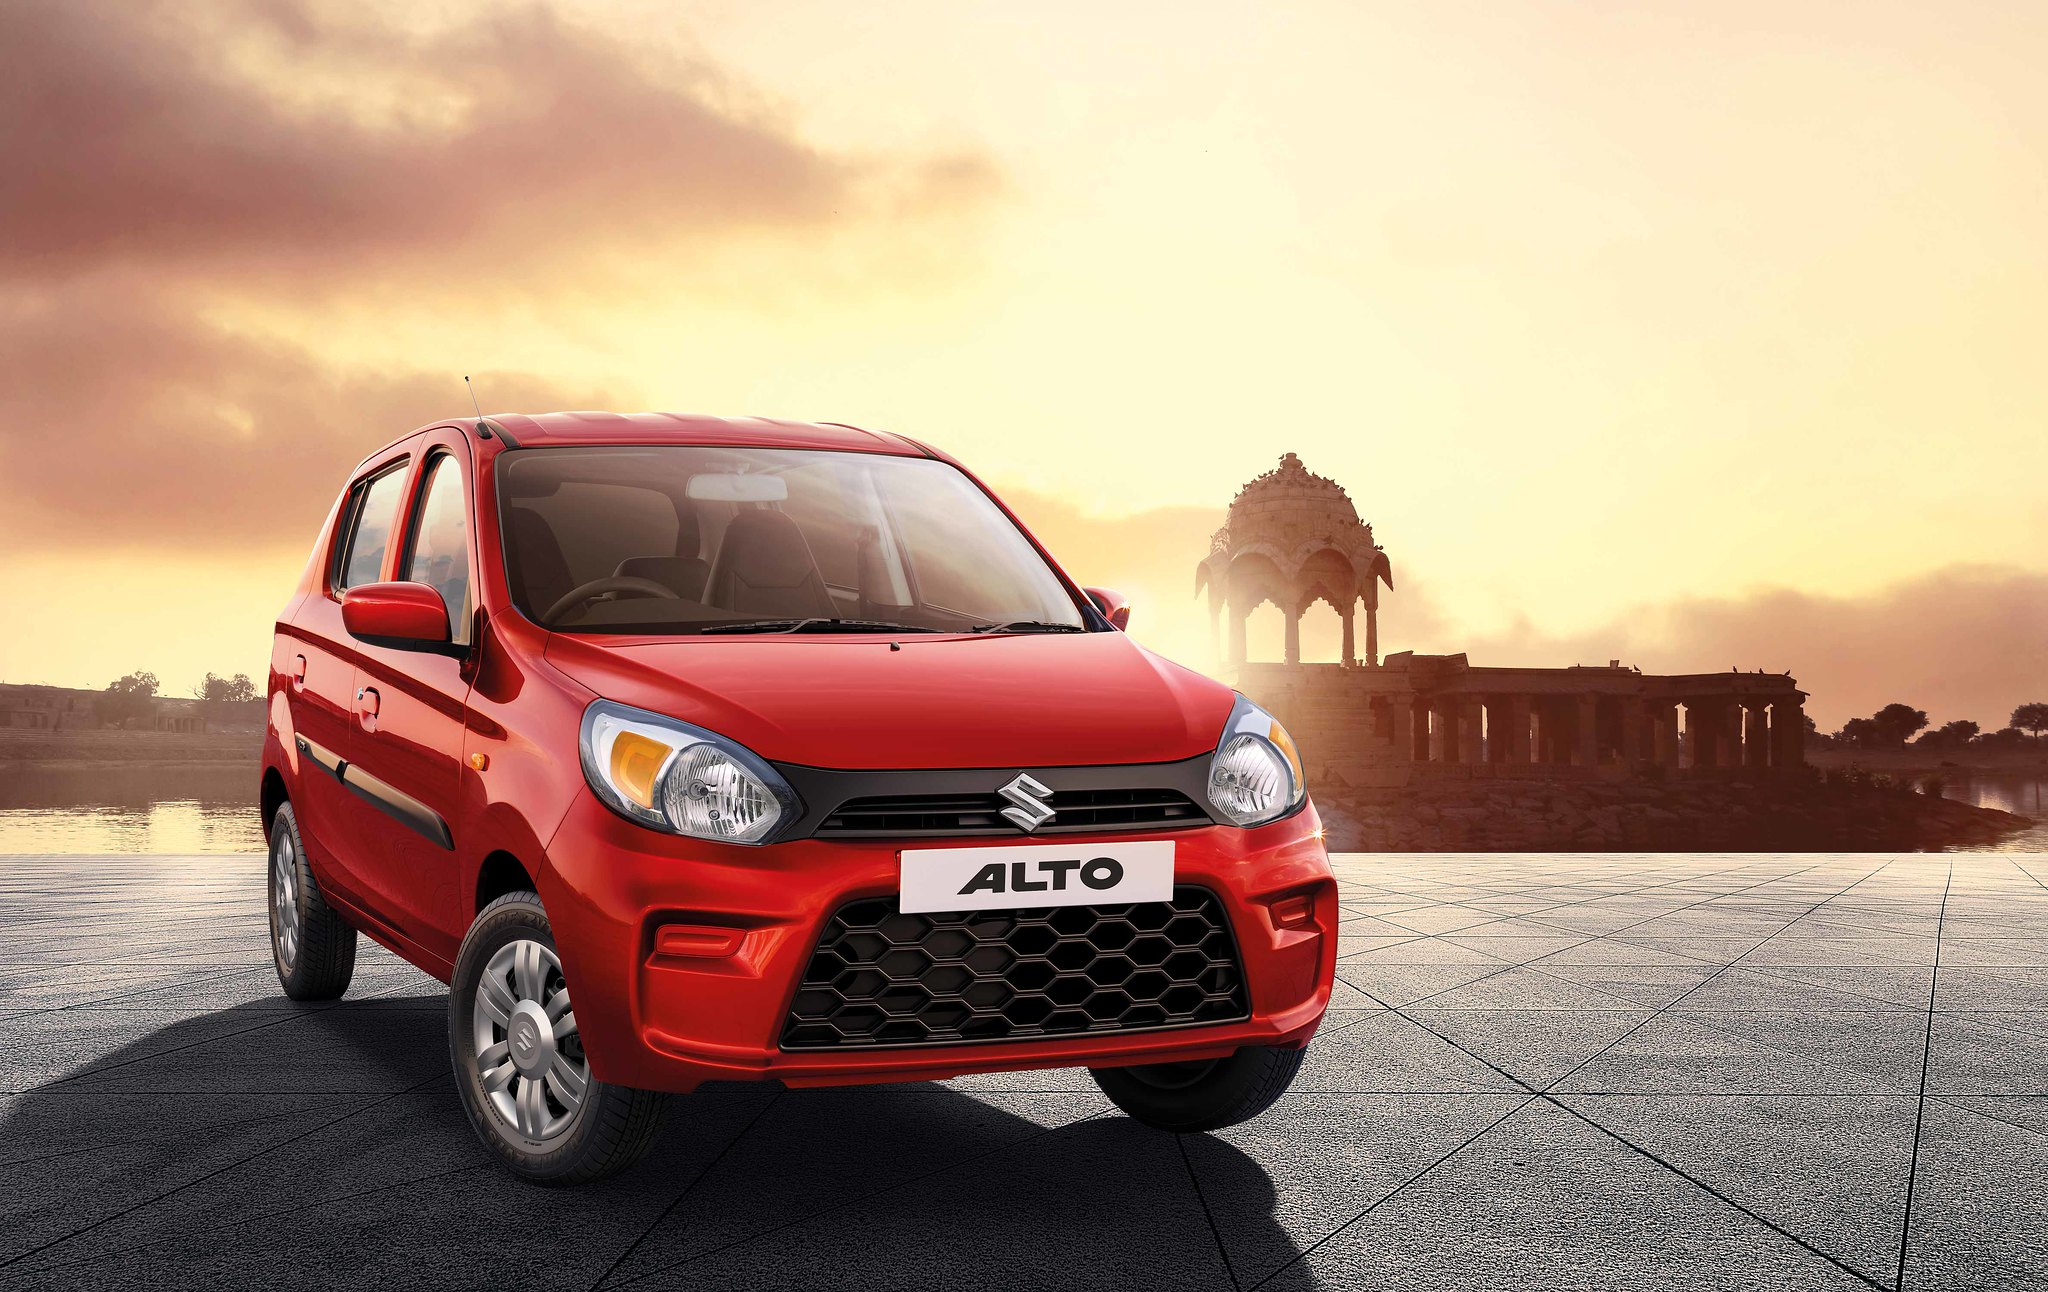 <strong>2. Maruti Suzuki Alto | Units sold: 16,394</strong>